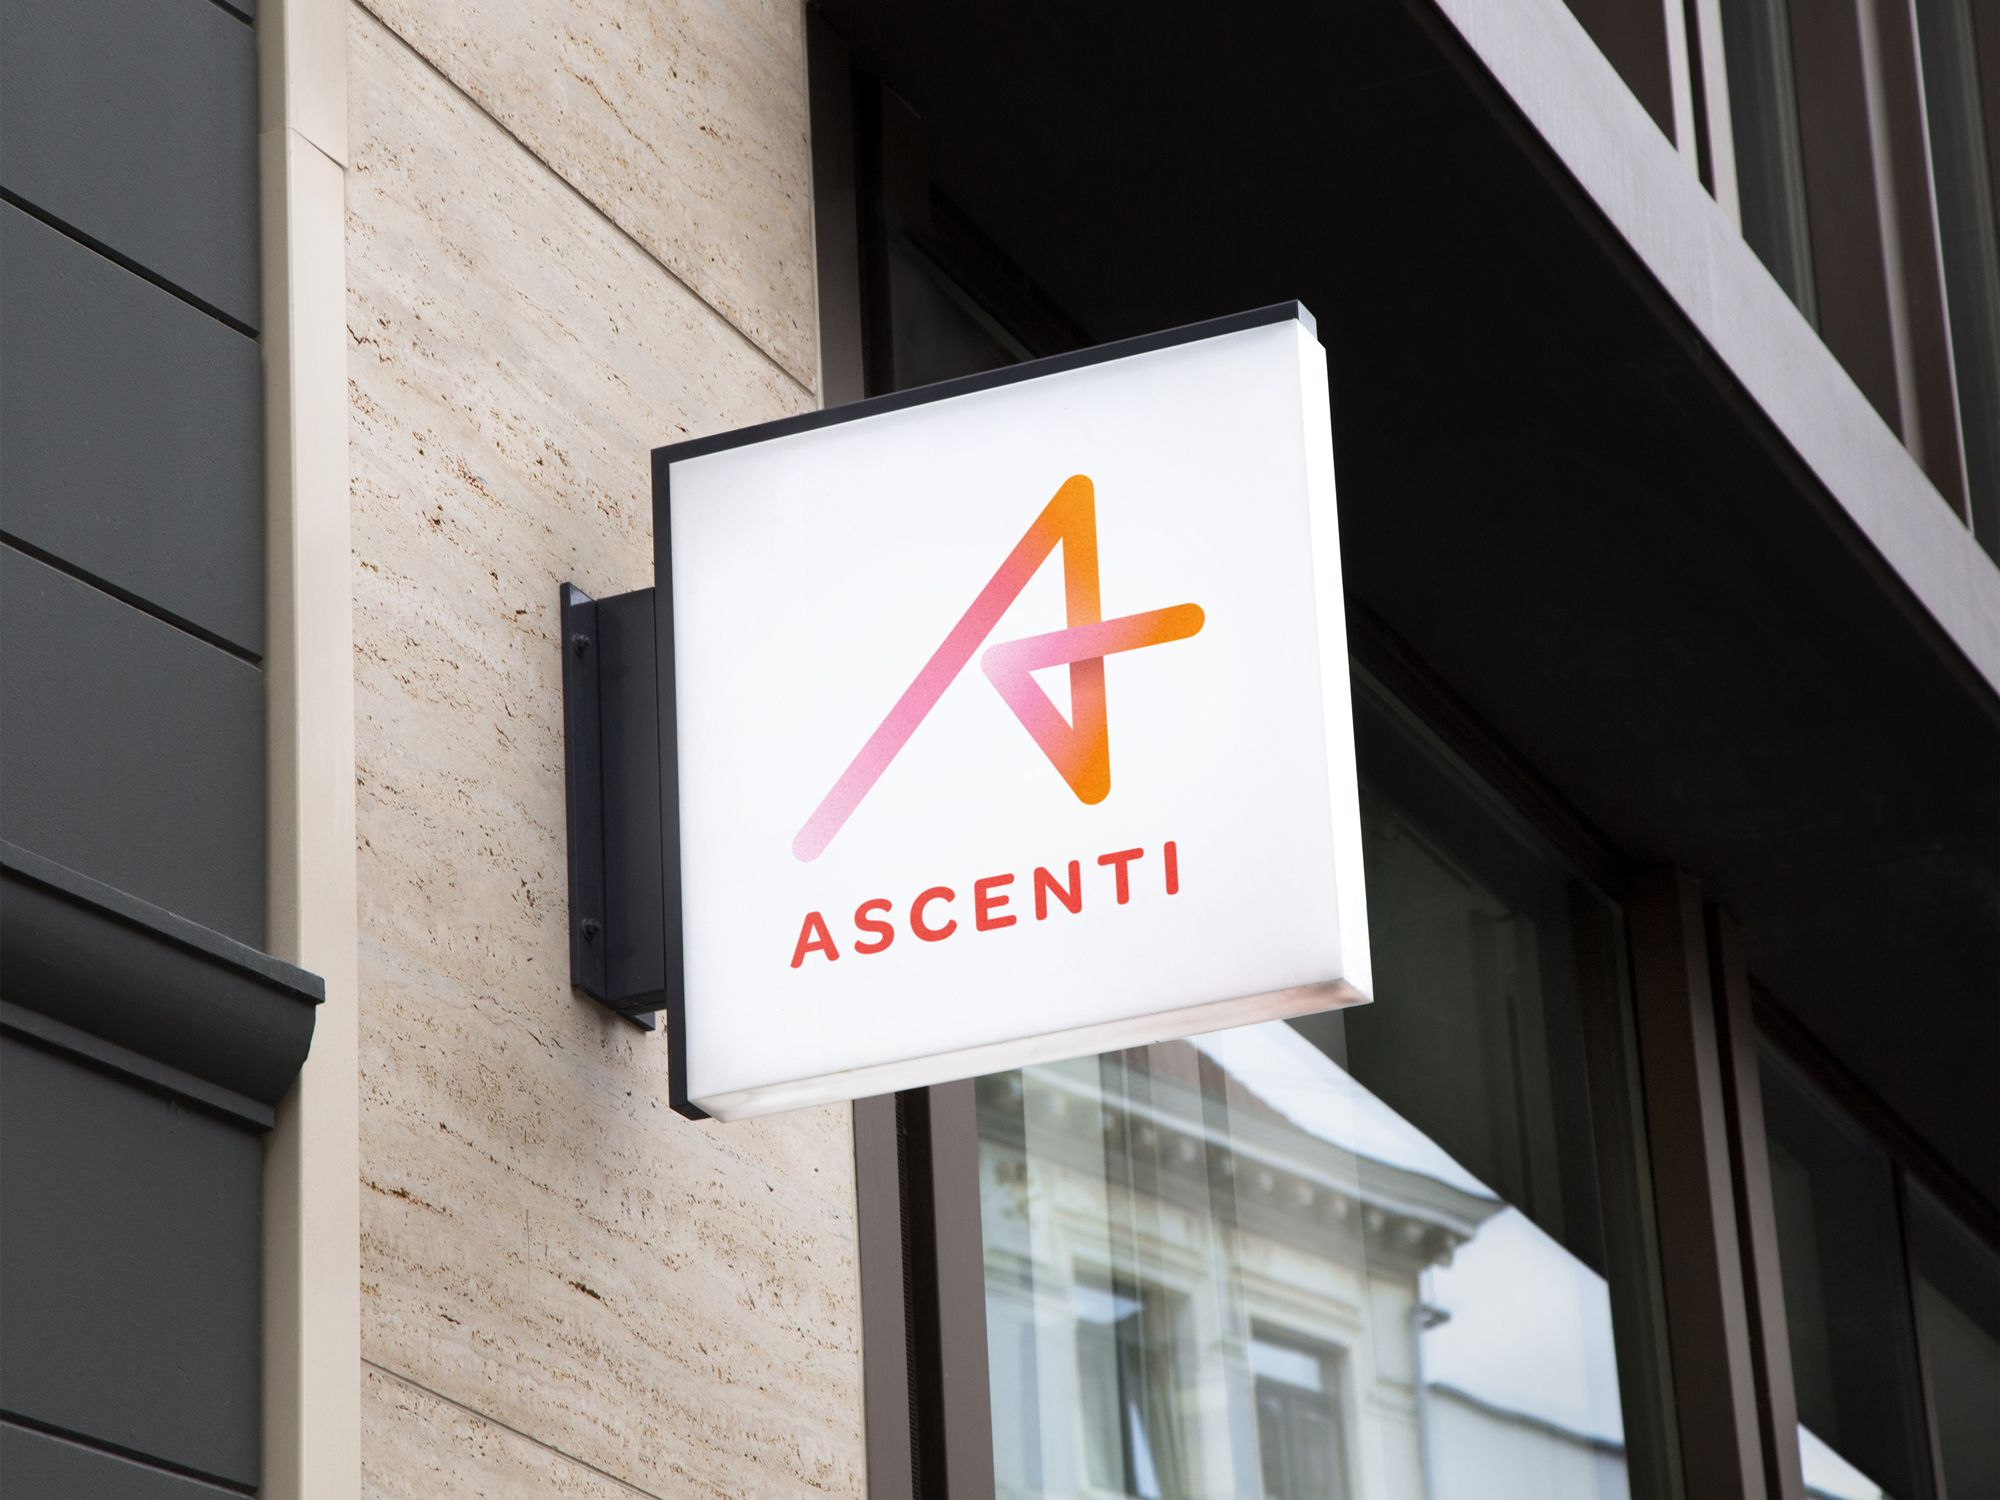 Hanging-Wall-Sign-MockUp-ascenti-compressor